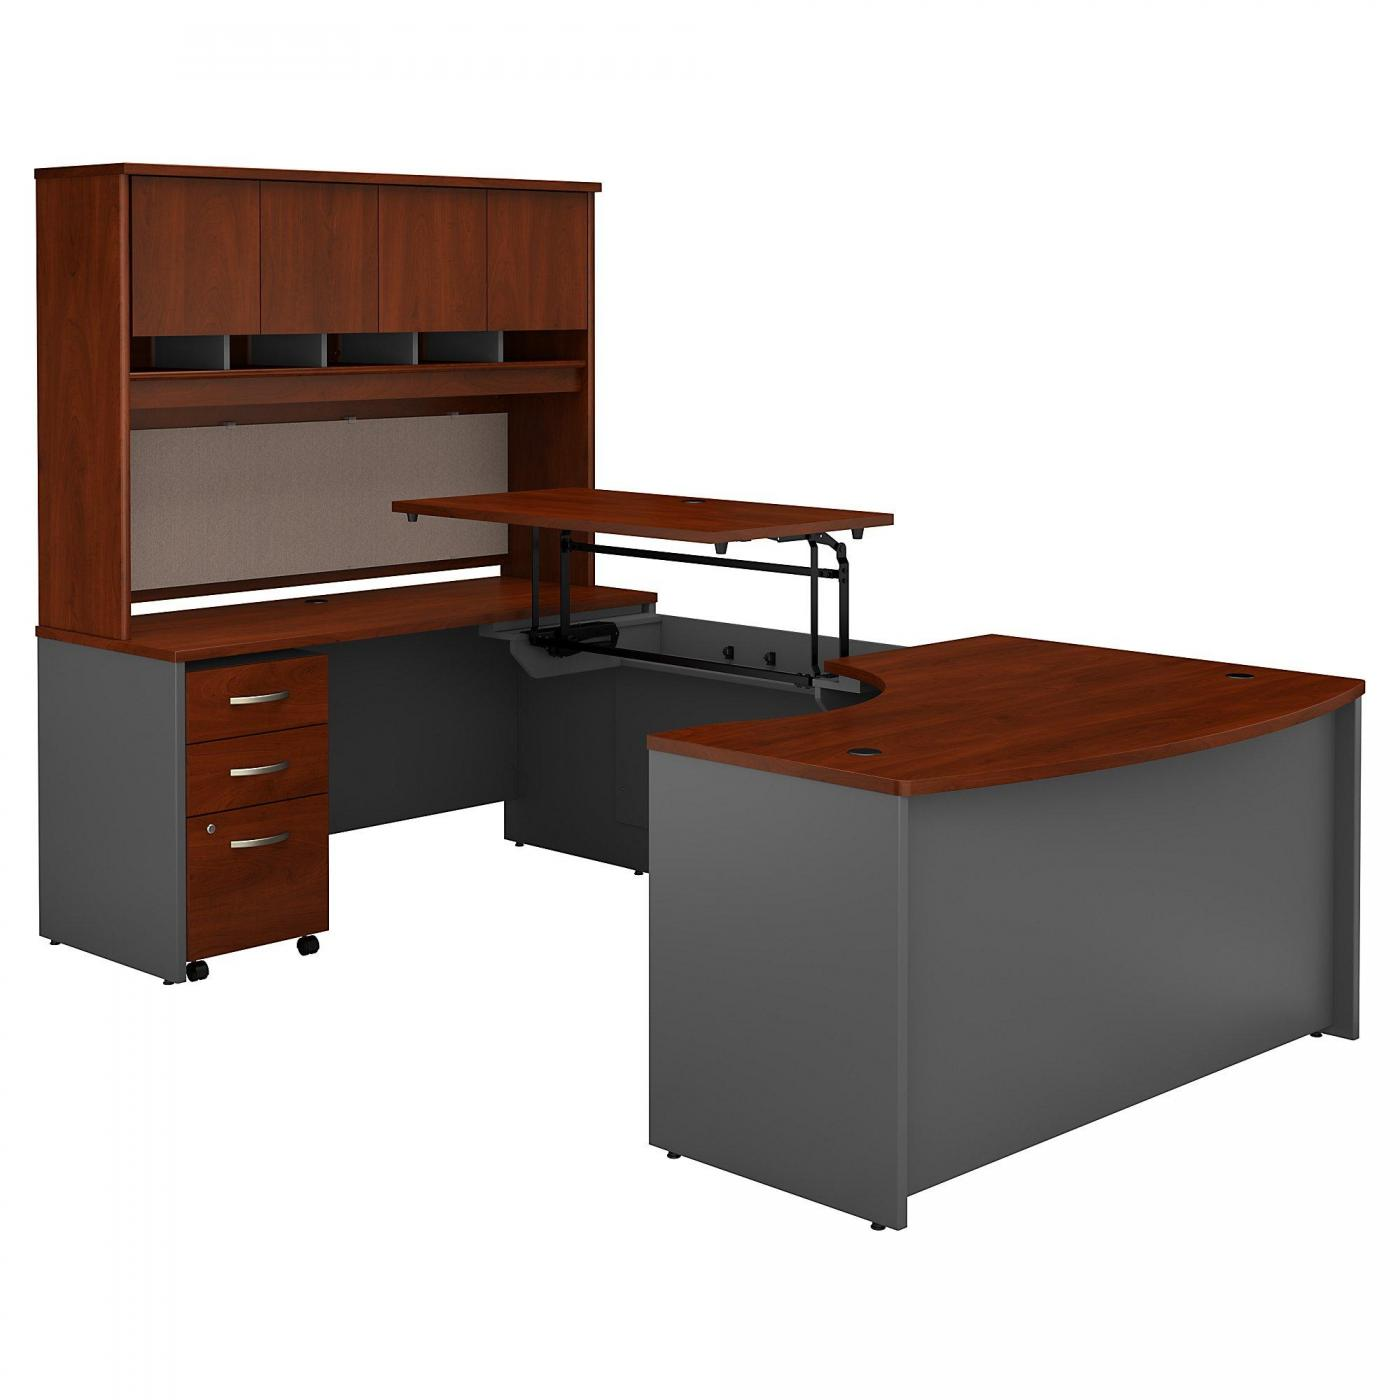 <font color=#c60><b>BUSH BUSINESS FURNITURE SERIES C 60W X 43D RIGHT HAND 3 POSITION SIT TO STAND U SHAPED DESK WITH HUTCH AND MOBILE FILE CABINET. FREE SHIPPING. VIDEO: